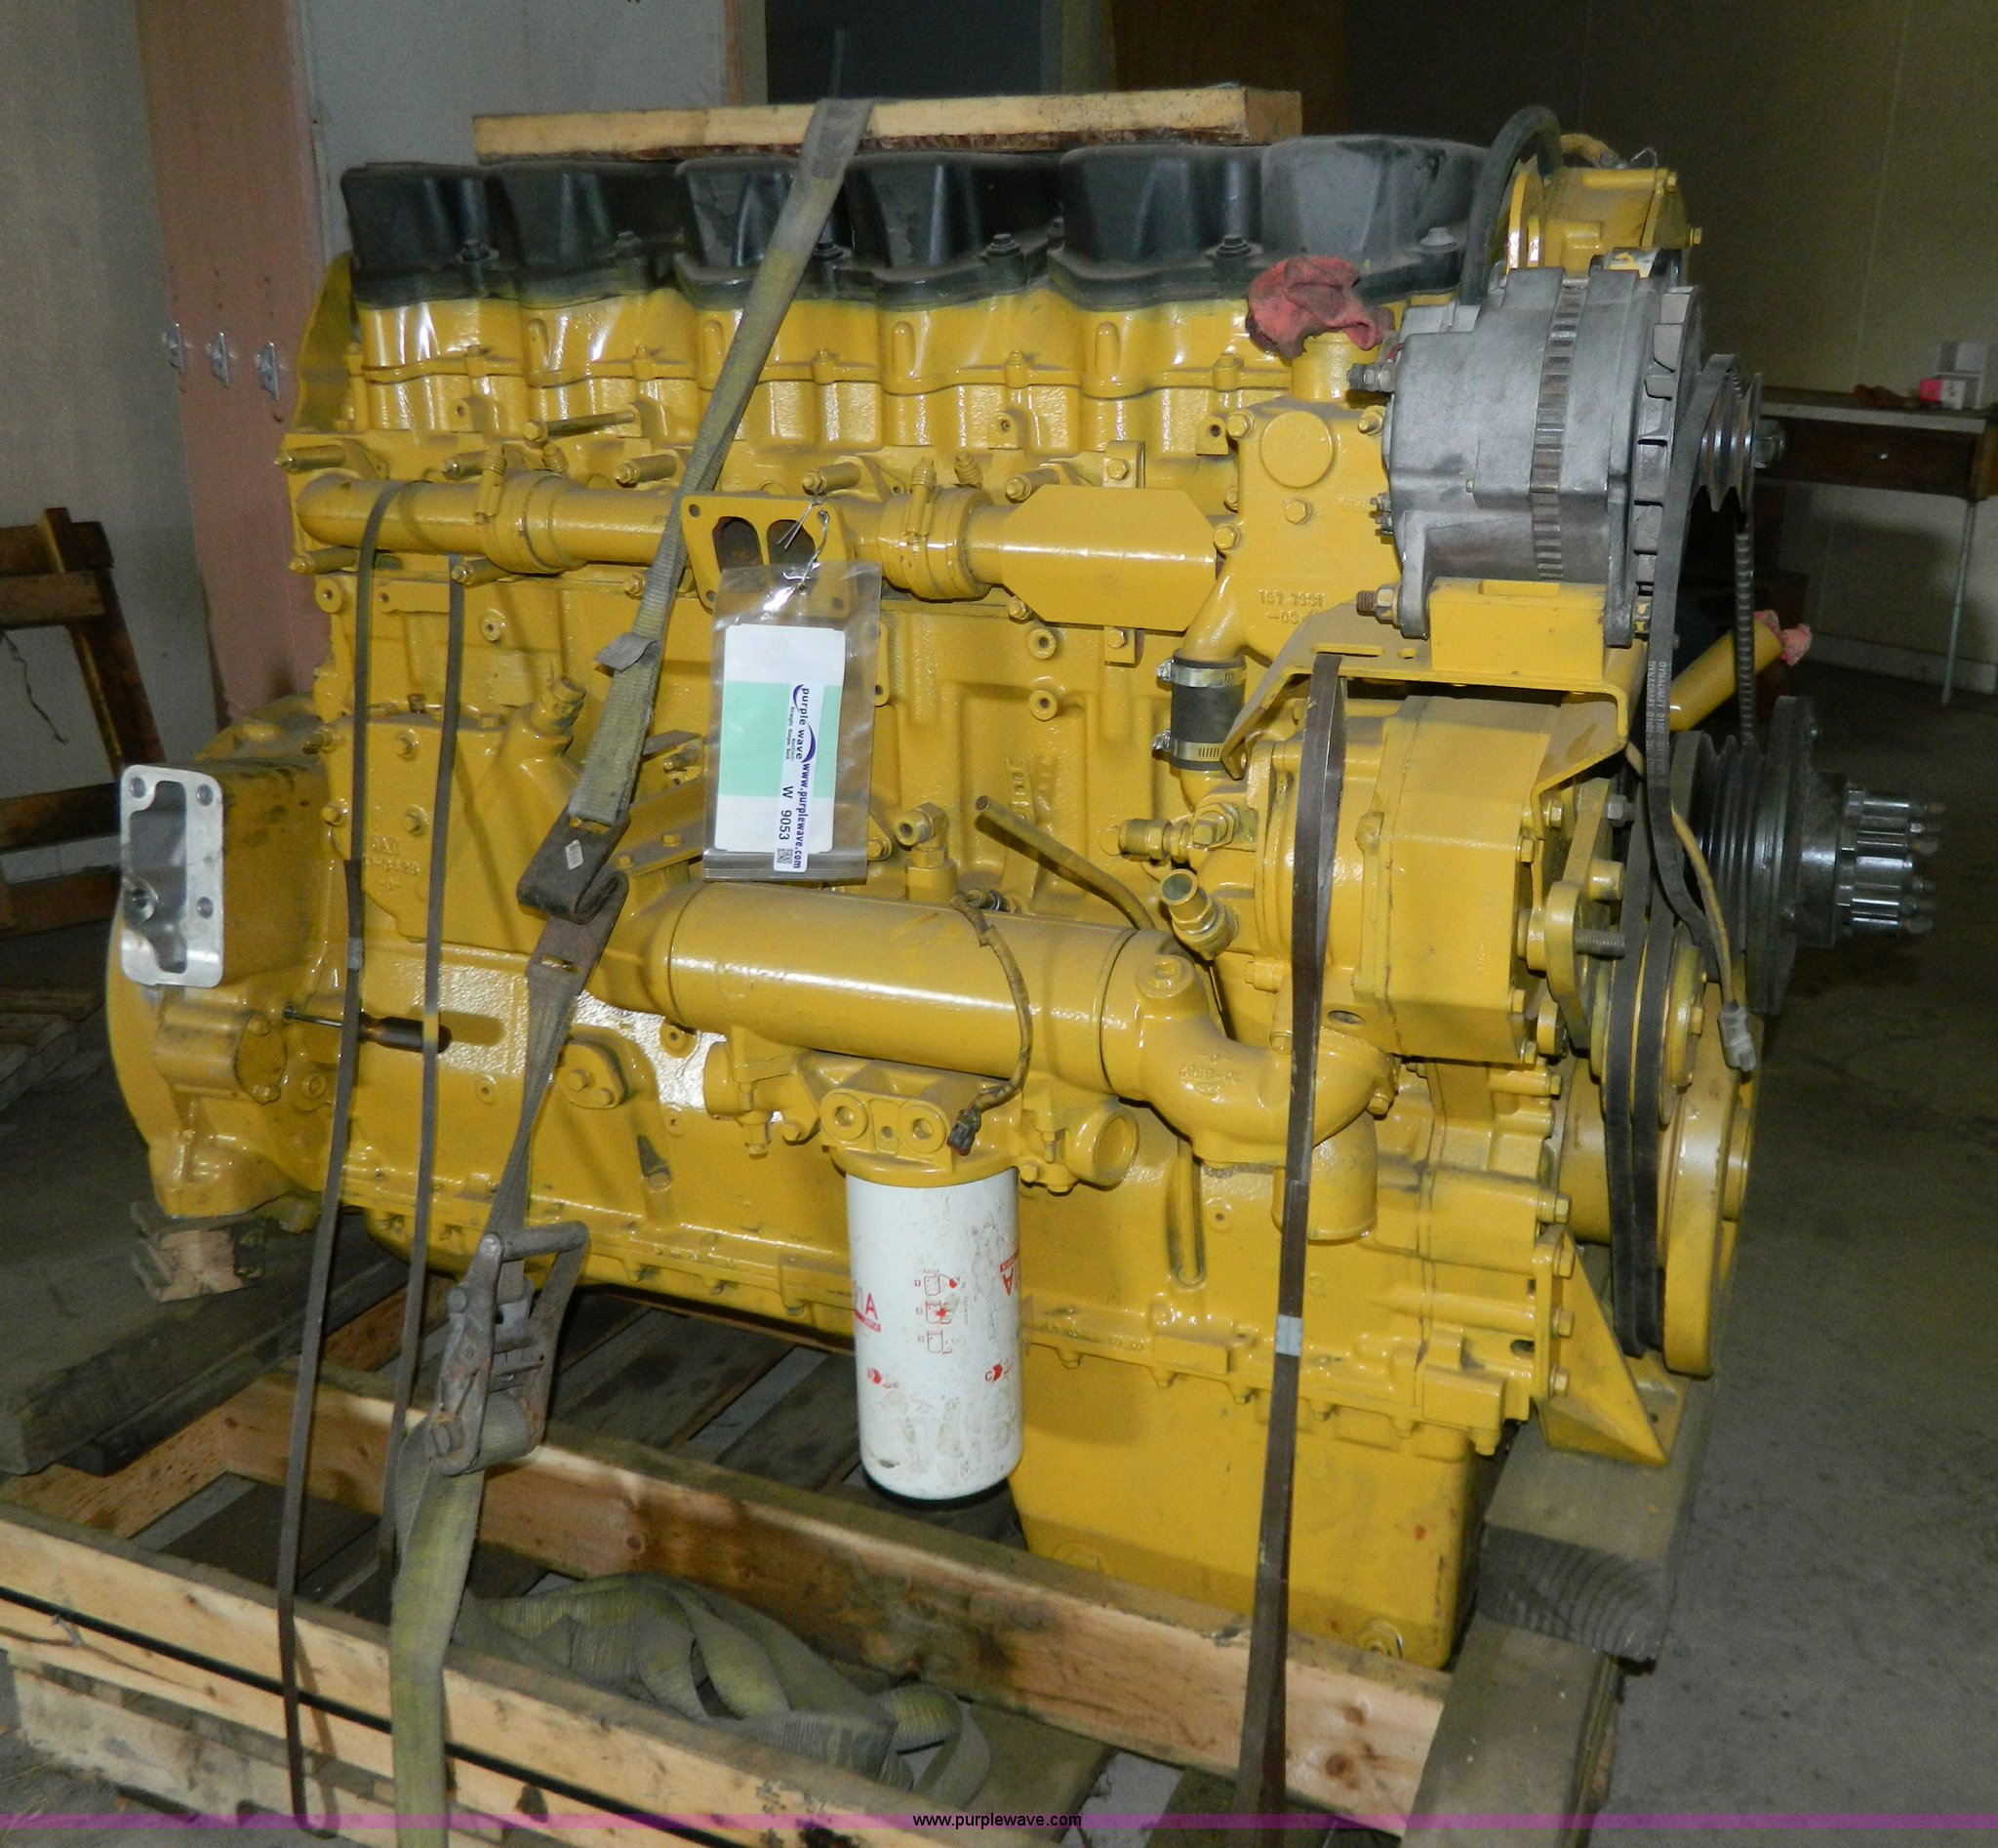 Caterpillar 3406e Engine Item W9053 Sold May 15 Midwest Wiring For Full Size In New Window